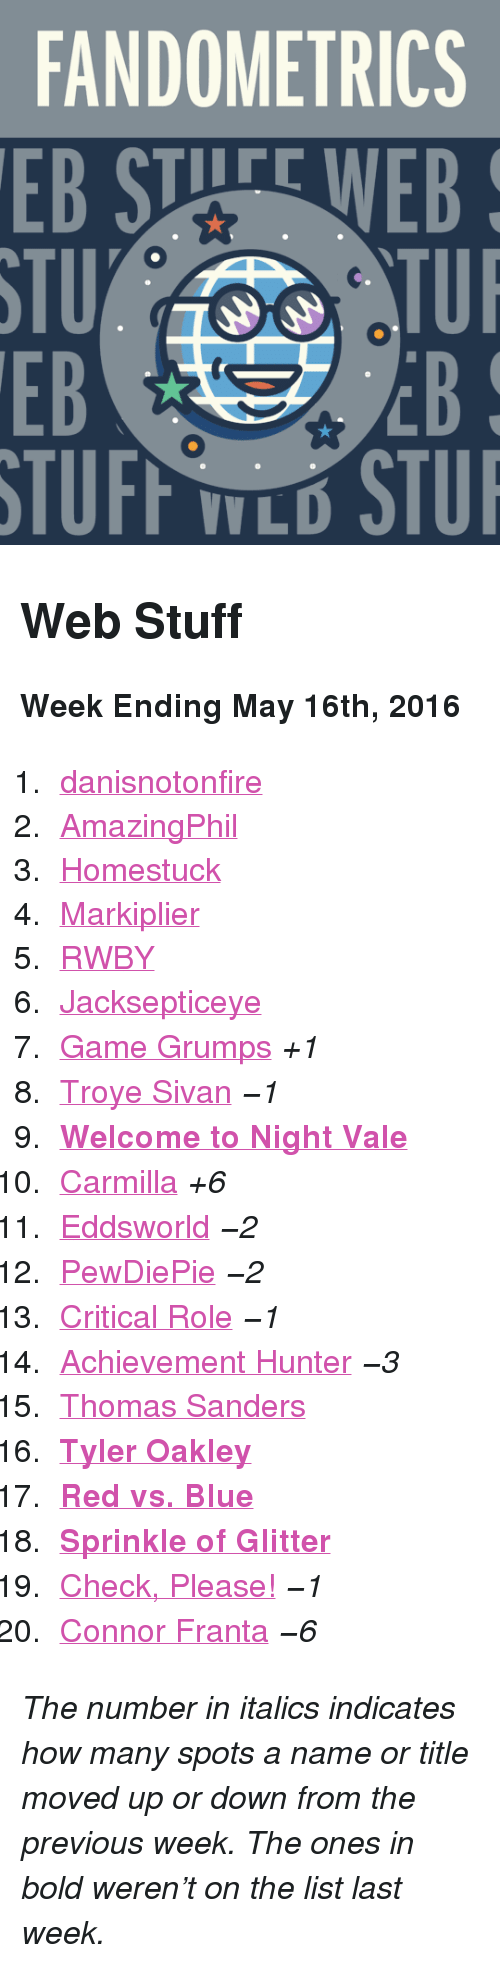 """Red vs. Blue: FANDOMETRICS  EB STUFE WEB  STU  EB  TUI  EB  V L <h2>Web Stuff</h2><p><b>Week Ending May 16th, 2016</b></p><ol><li><a href=""""http://www.tumblr.com/search/danisnotonfire"""">danisnotonfire</a></li>  <li><a href=""""http://www.tumblr.com/search/amazingphil"""">AmazingPhil</a></li>  <li><a href=""""http://www.tumblr.com/search/homestuck"""">Homestuck</a></li>  <li><a href=""""http://www.tumblr.com/search/markiplier"""">Markiplier</a></li>  <li><a href=""""http://www.tumblr.com/search/rwby"""">RWBY</a></li>  <li><a href=""""http://www.tumblr.com/search/jacksepticeye"""">Jacksepticeye</a></li>  <li><a href=""""http://www.tumblr.com/search/game%20grumps"""">Game Grumps</a><i>+1</i></li>  <li><a href=""""http://www.tumblr.com/search/troye%20sivan"""">Troye Sivan</a><i><i><i>−1</i></i></i></li>  <li><a href=""""http://www.tumblr.com/search/welcome%20to%20night%20vale""""><b>Welcome to Night Vale</b></a></li>  <li><a href=""""http://www.tumblr.com/search/carmilla"""">Carmilla</a><i>+6</i></li>  <li><a href=""""http://www.tumblr.com/search/eddsworld"""">Eddsworld</a><i><i><i>−2</i></i></i></li>  <li><a href=""""http://www.tumblr.com/search/pewdiepie"""">PewDiePie</a><i><i><i>−2</i></i></i></li>  <li><a href=""""http://www.tumblr.com/search/critical%20role"""">Critical Role</a><i><i><i>−1</i></i></i></li>  <li><a href=""""http://www.tumblr.com/search/achievement%20hunter"""">Achievement Hunter</a><i><i><i>−3</i></i></i></li>  <li><a href=""""http://www.tumblr.com/search/thomas%20sanders"""">Thomas Sanders</a></li>  <li><a href=""""http://www.tumblr.com/search/tyler%20oakley""""><b>Tyler Oakley</b></a></li>  <li><a href=""""http://www.tumblr.com/search/rvb""""><b>Red vs. Blue</b></a></li>  <li><a href=""""http://www.tumblr.com/search/sprinkleofglitter""""><b>Sprinkle of Glitter</b></a></li>  <li><a href=""""http://www.tumblr.com/search/omgcheckplease"""">Check, Please!</a><i><i><i>−1</i></i></i></li>  <li><a href=""""http://www.tumblr.com/search/connor%20franta"""">Connor Franta</a><i><i><i>−6</i></i></i></li></ol><p><i>The number in italics indicates how many spots a name or ti"""